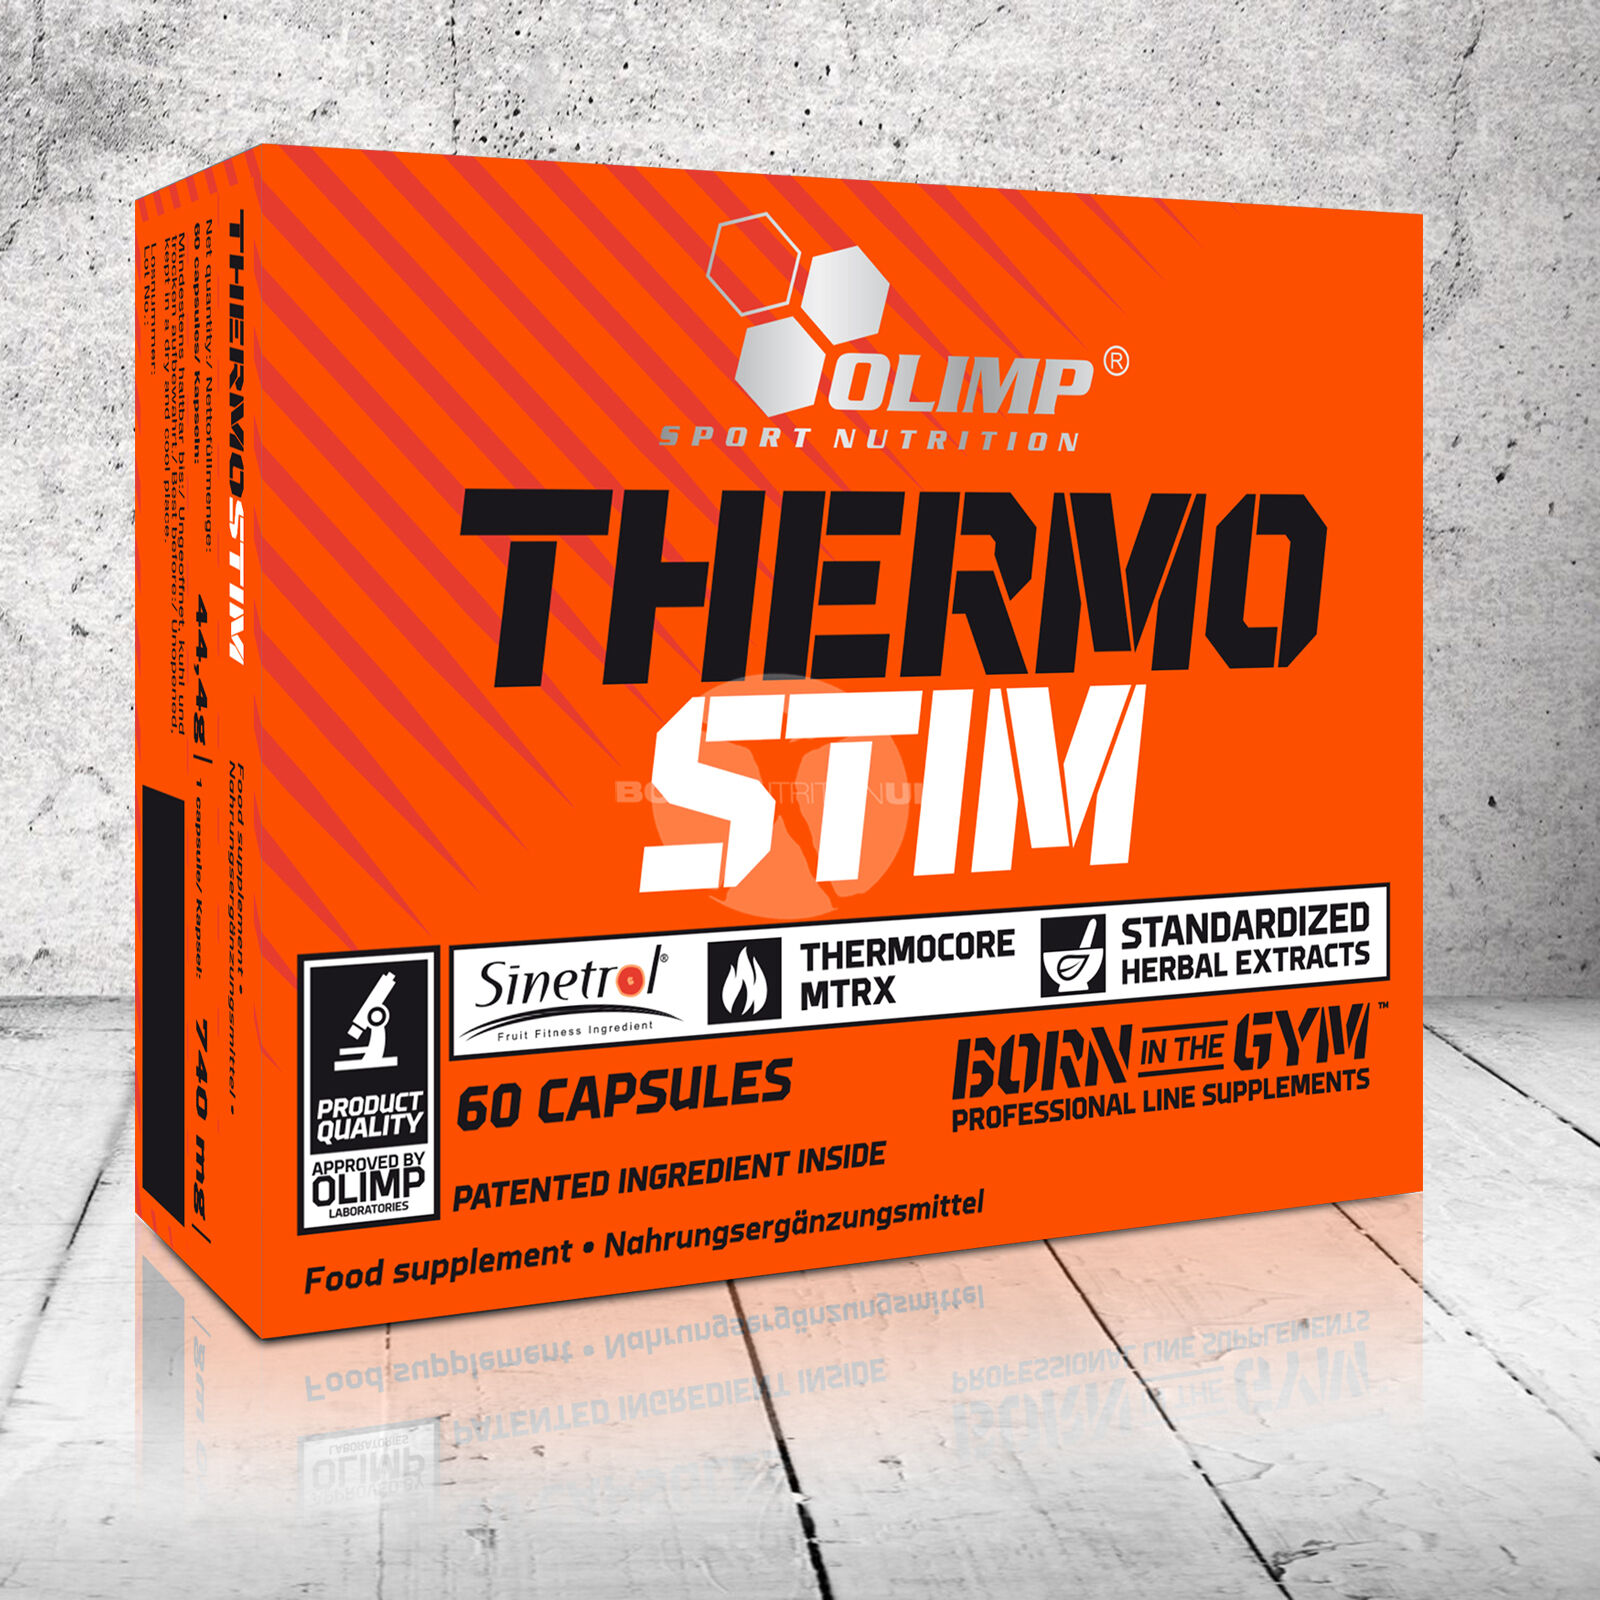 OLIMP Thermo Stim THERMOCORE THERMOCORE Stim MTRX    Weight Loss & Fat Burner d5b94f